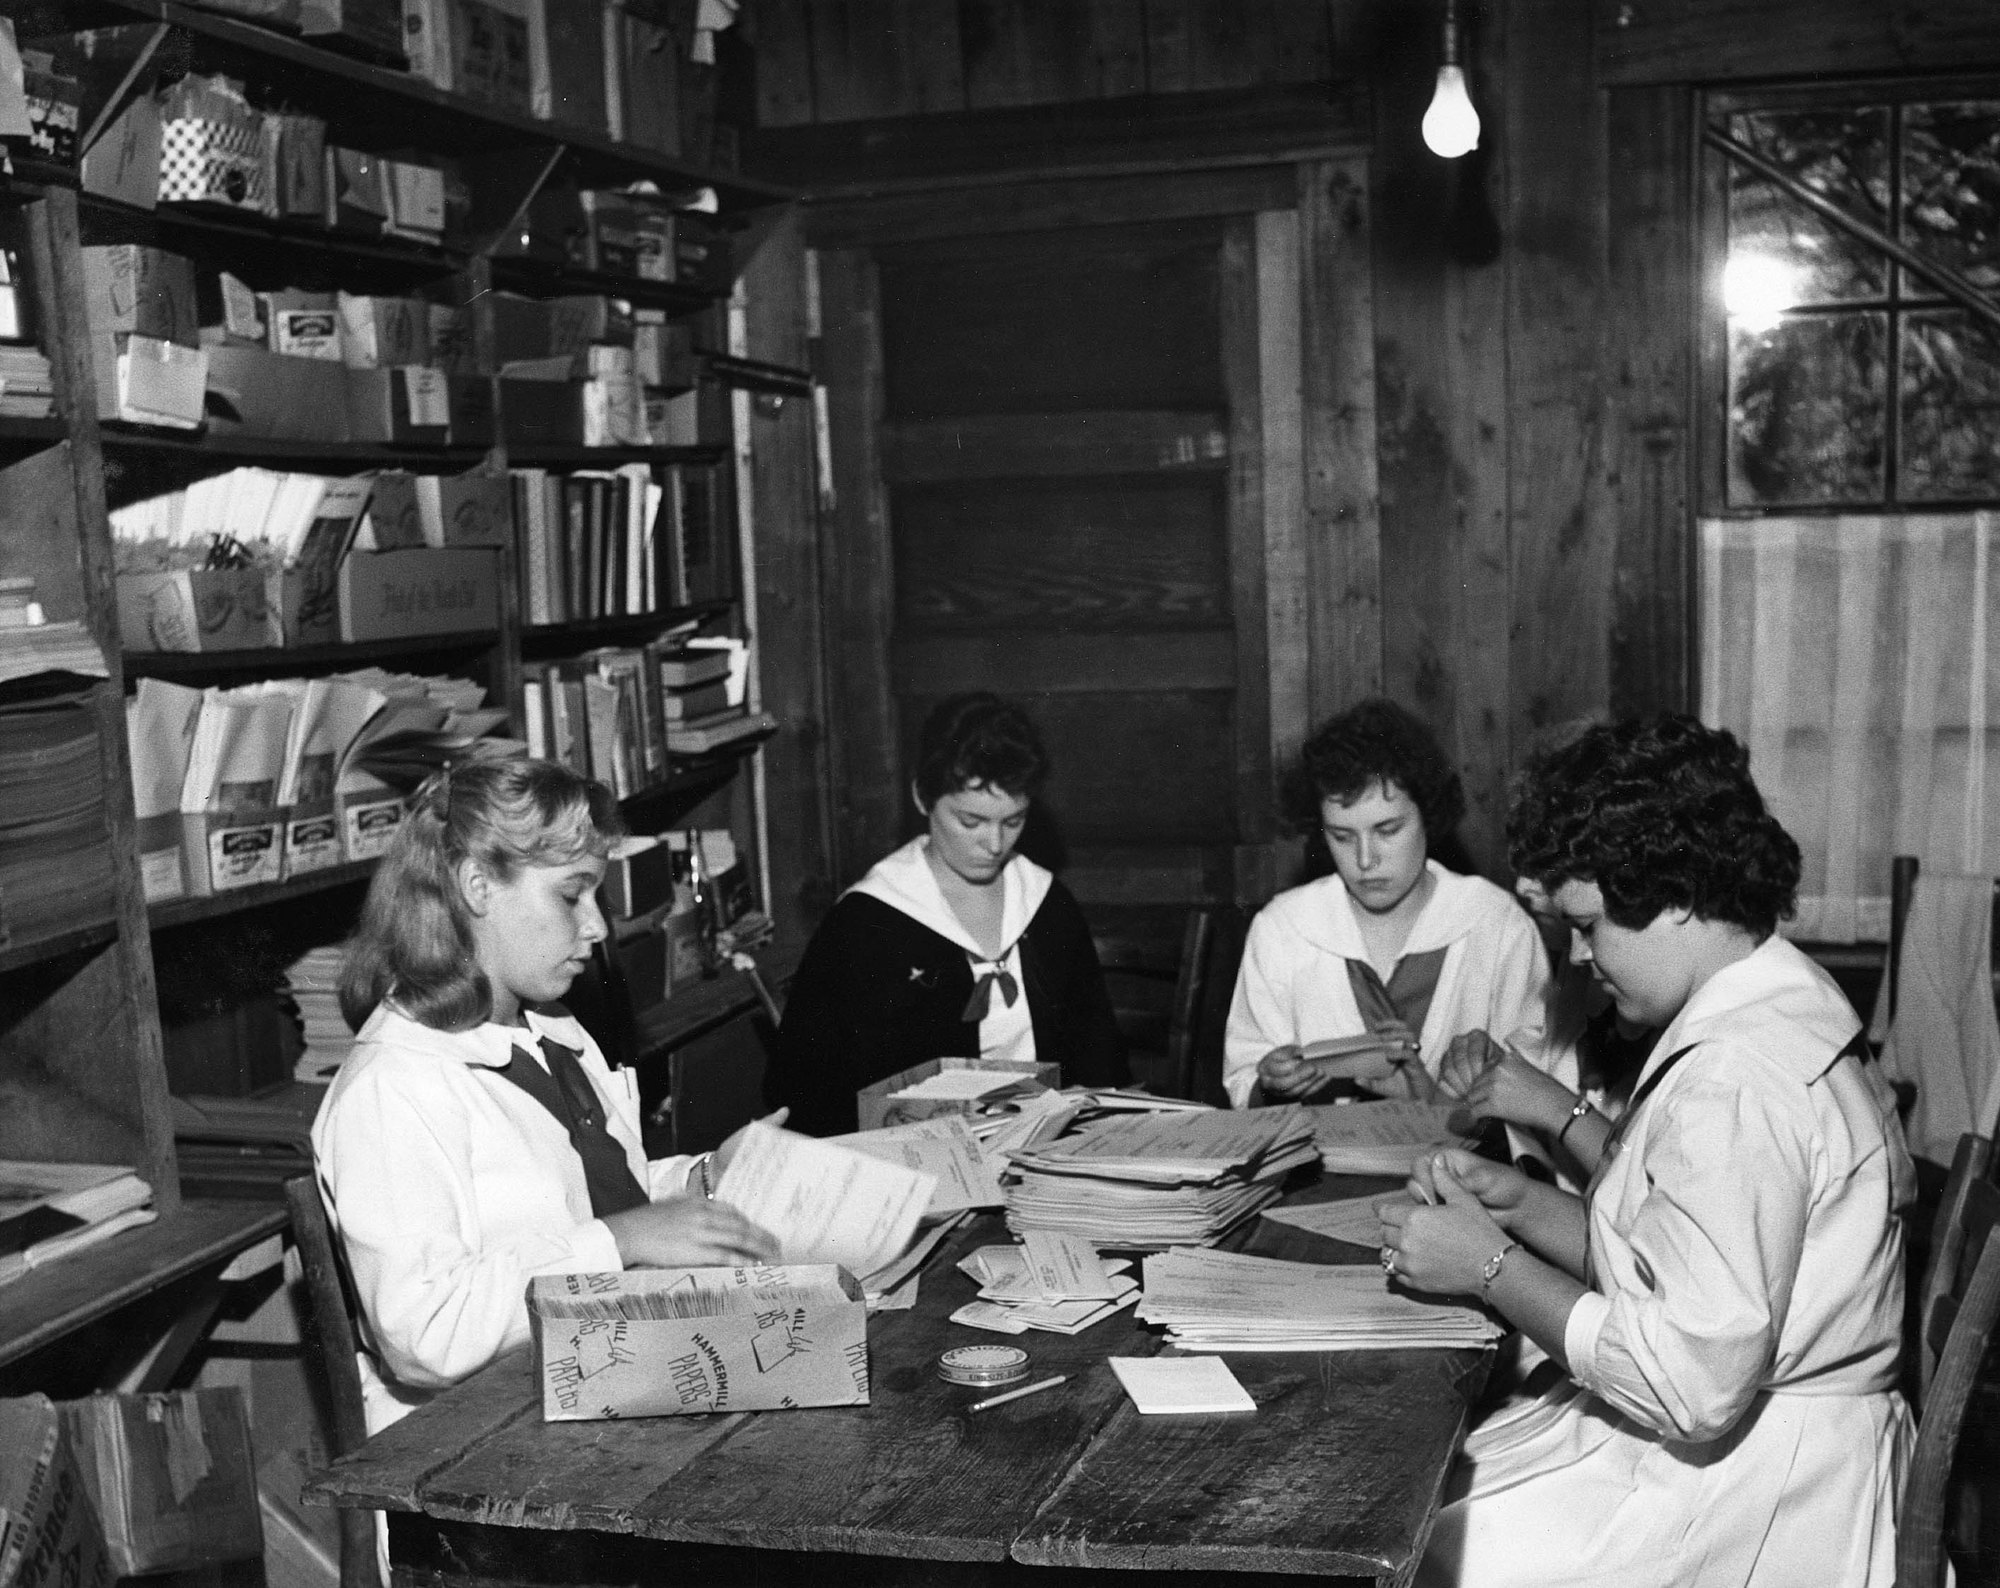 Students at Alice Lloyd College, Kentucky